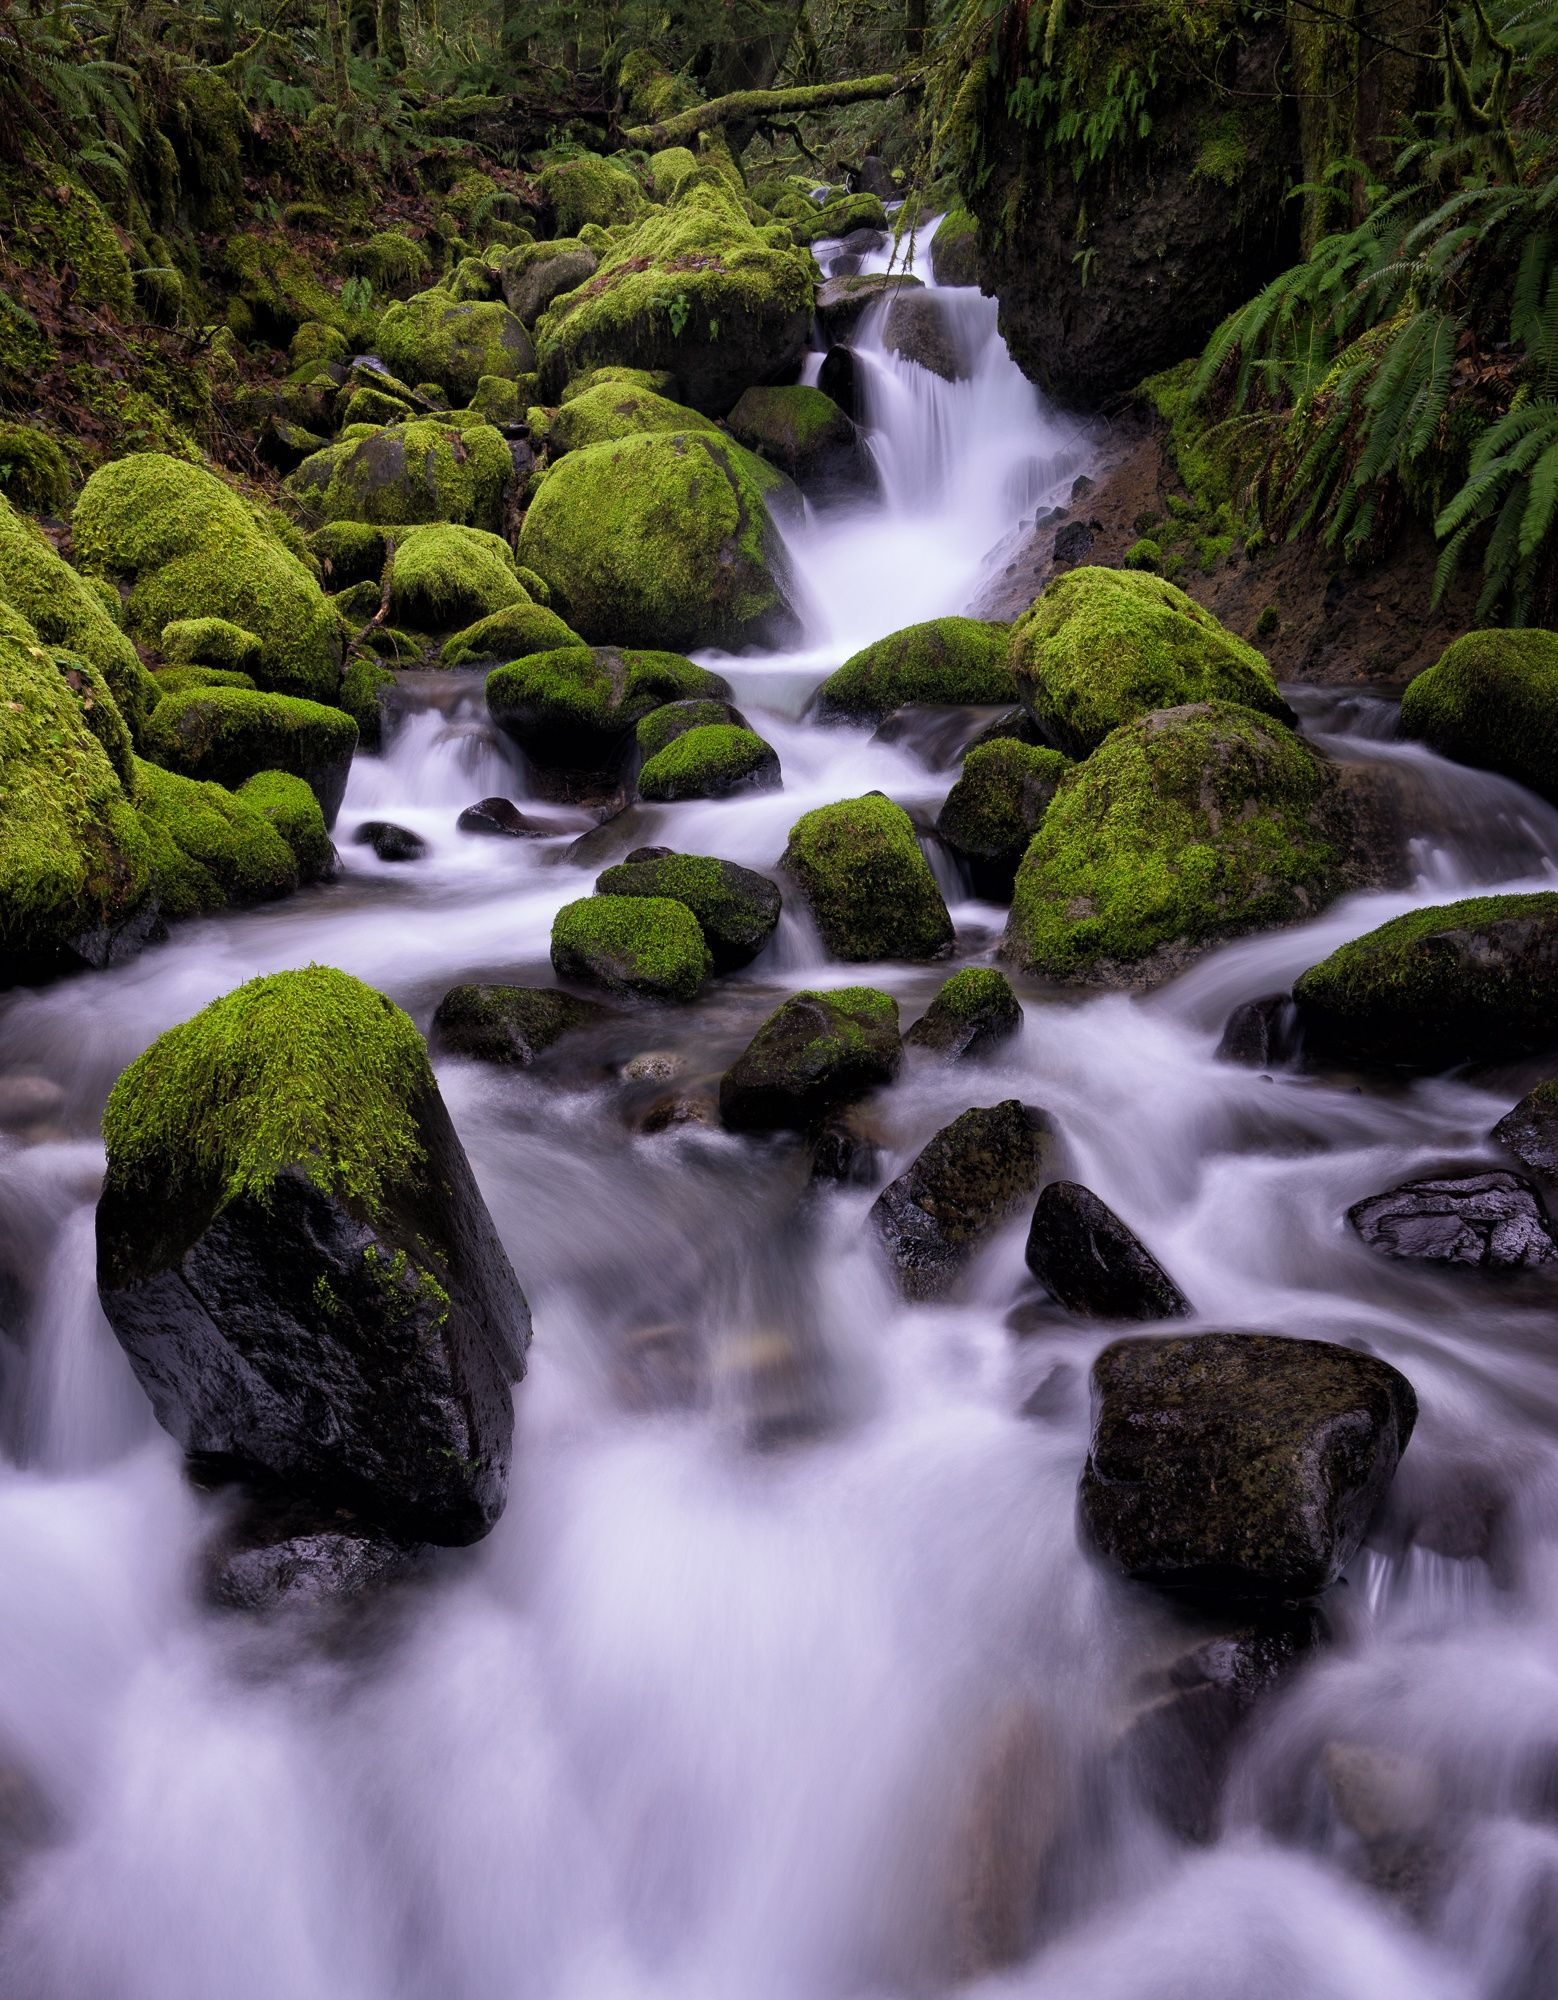 Ruckel Creek by Brian Bonham on 500px